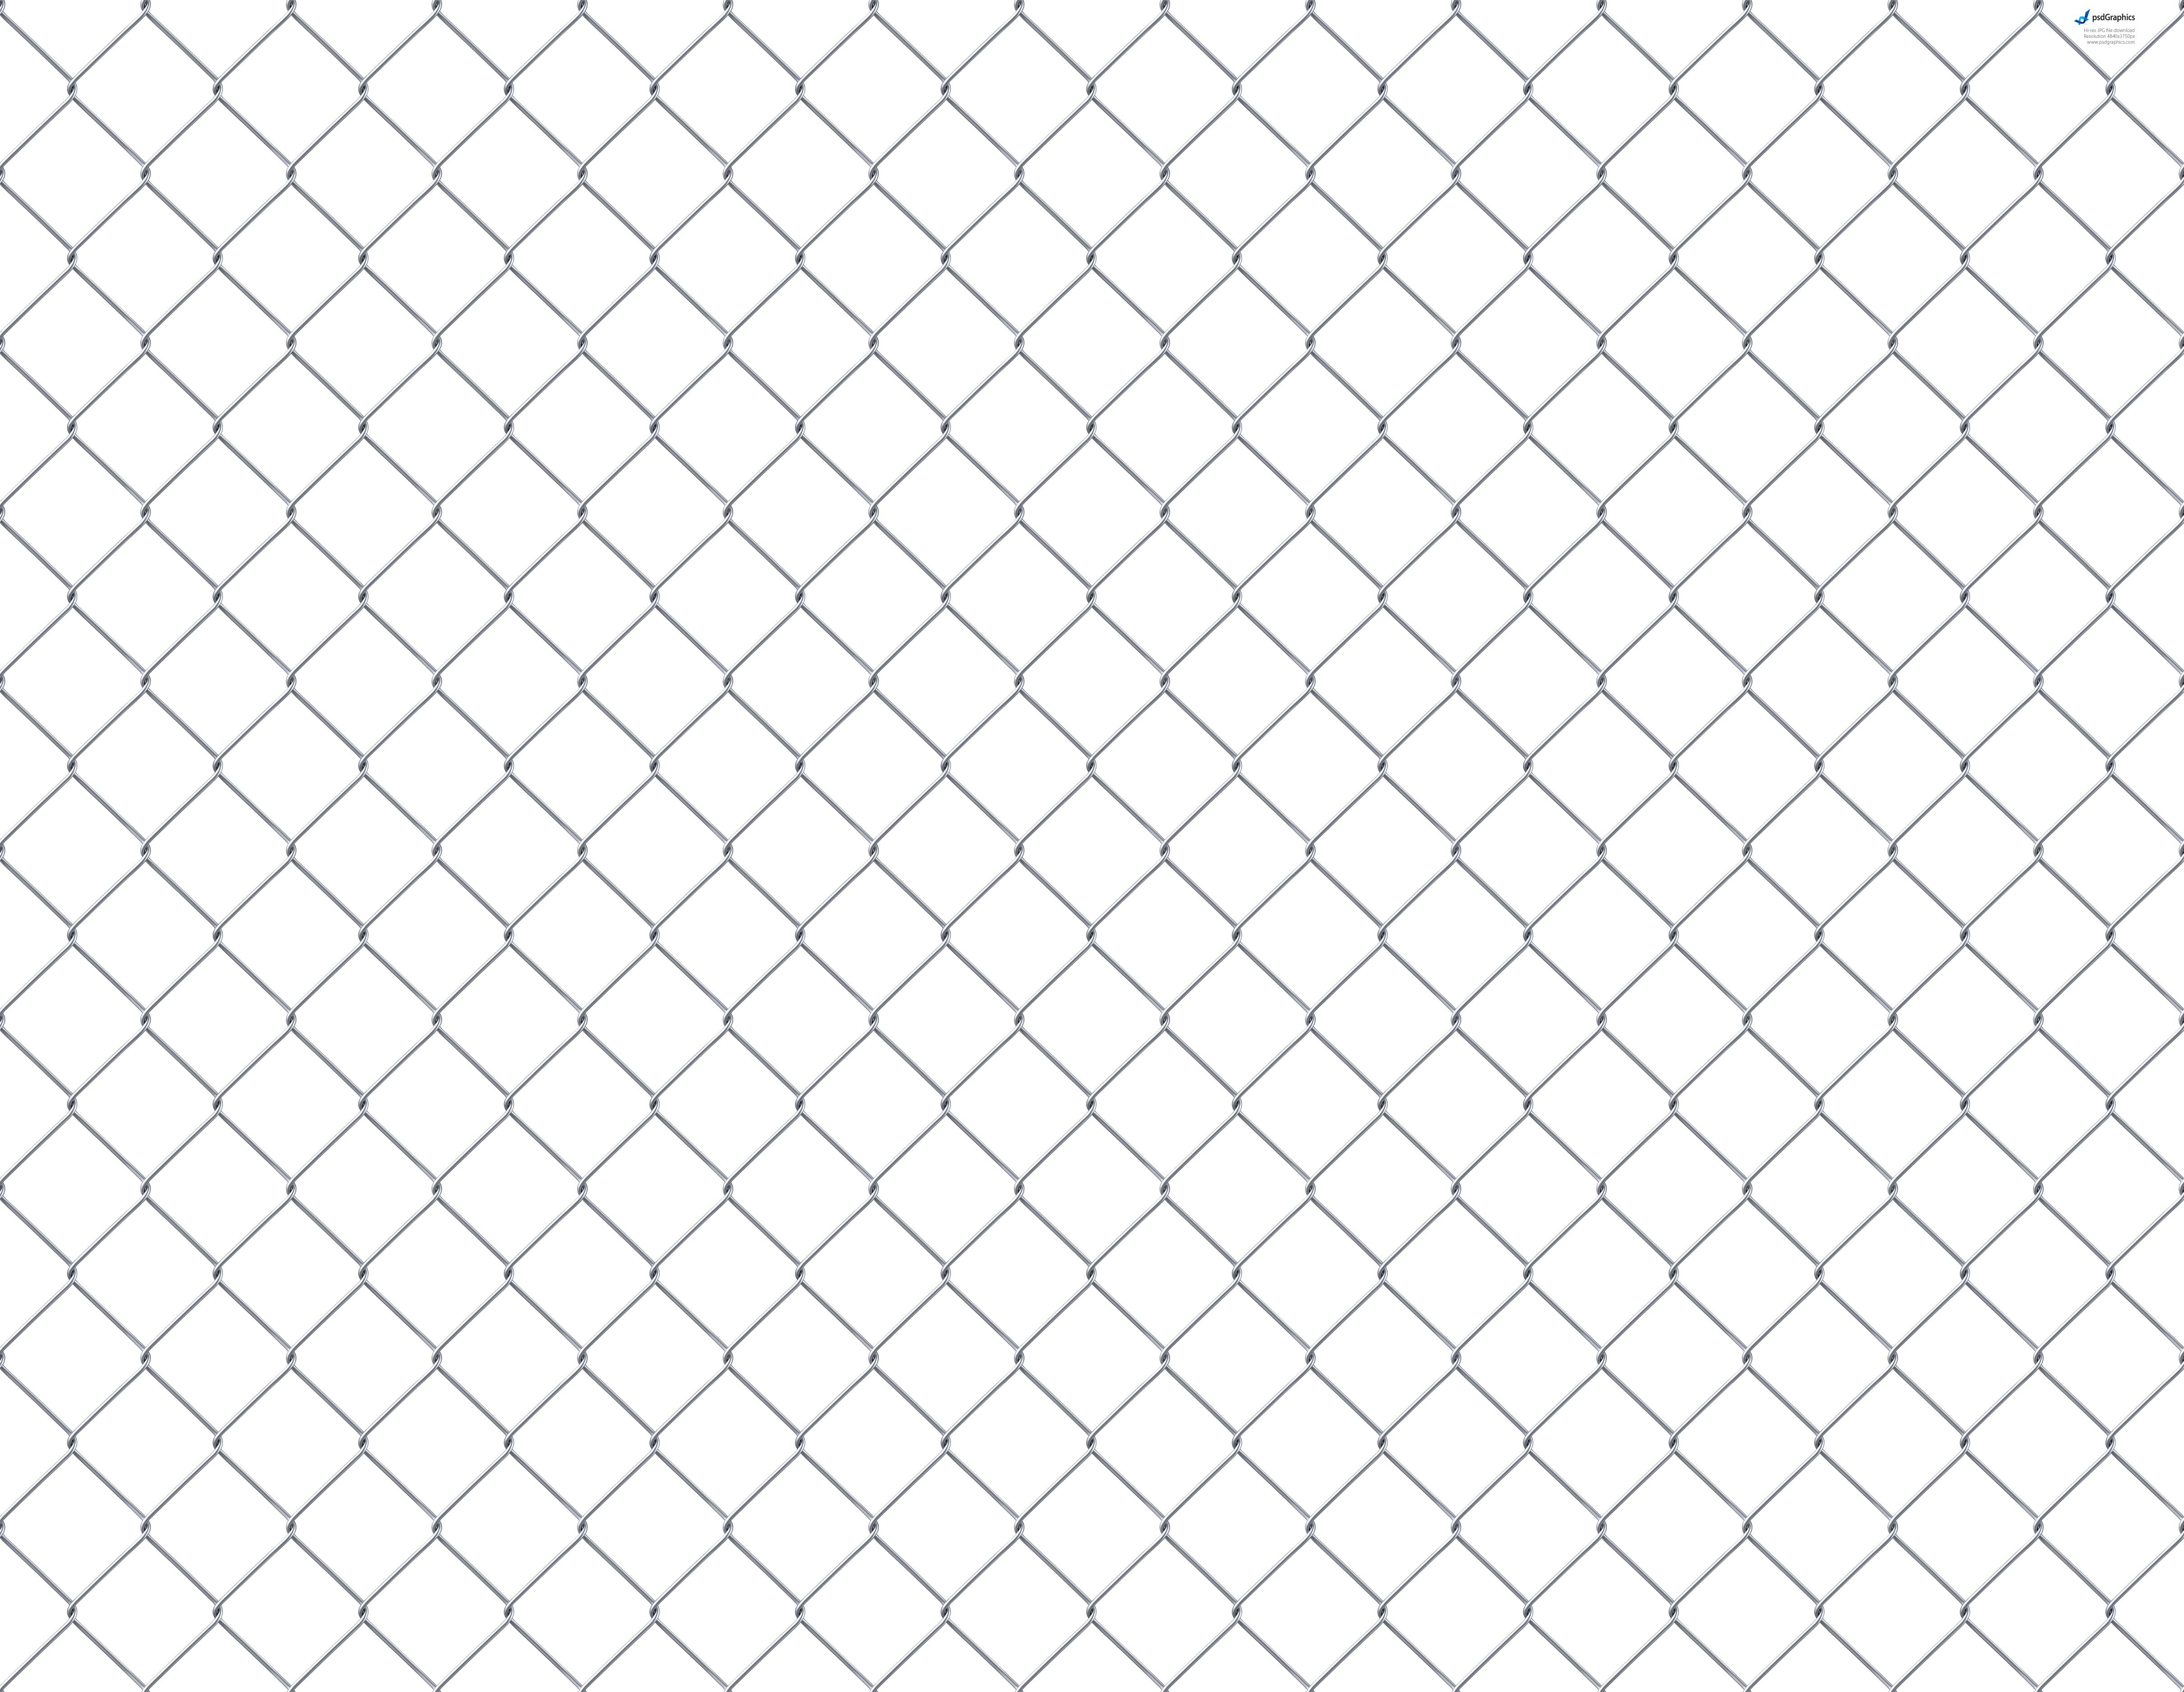 Chain Link Fence - http://www.litehouse.co/12954/chain-link-fence ...